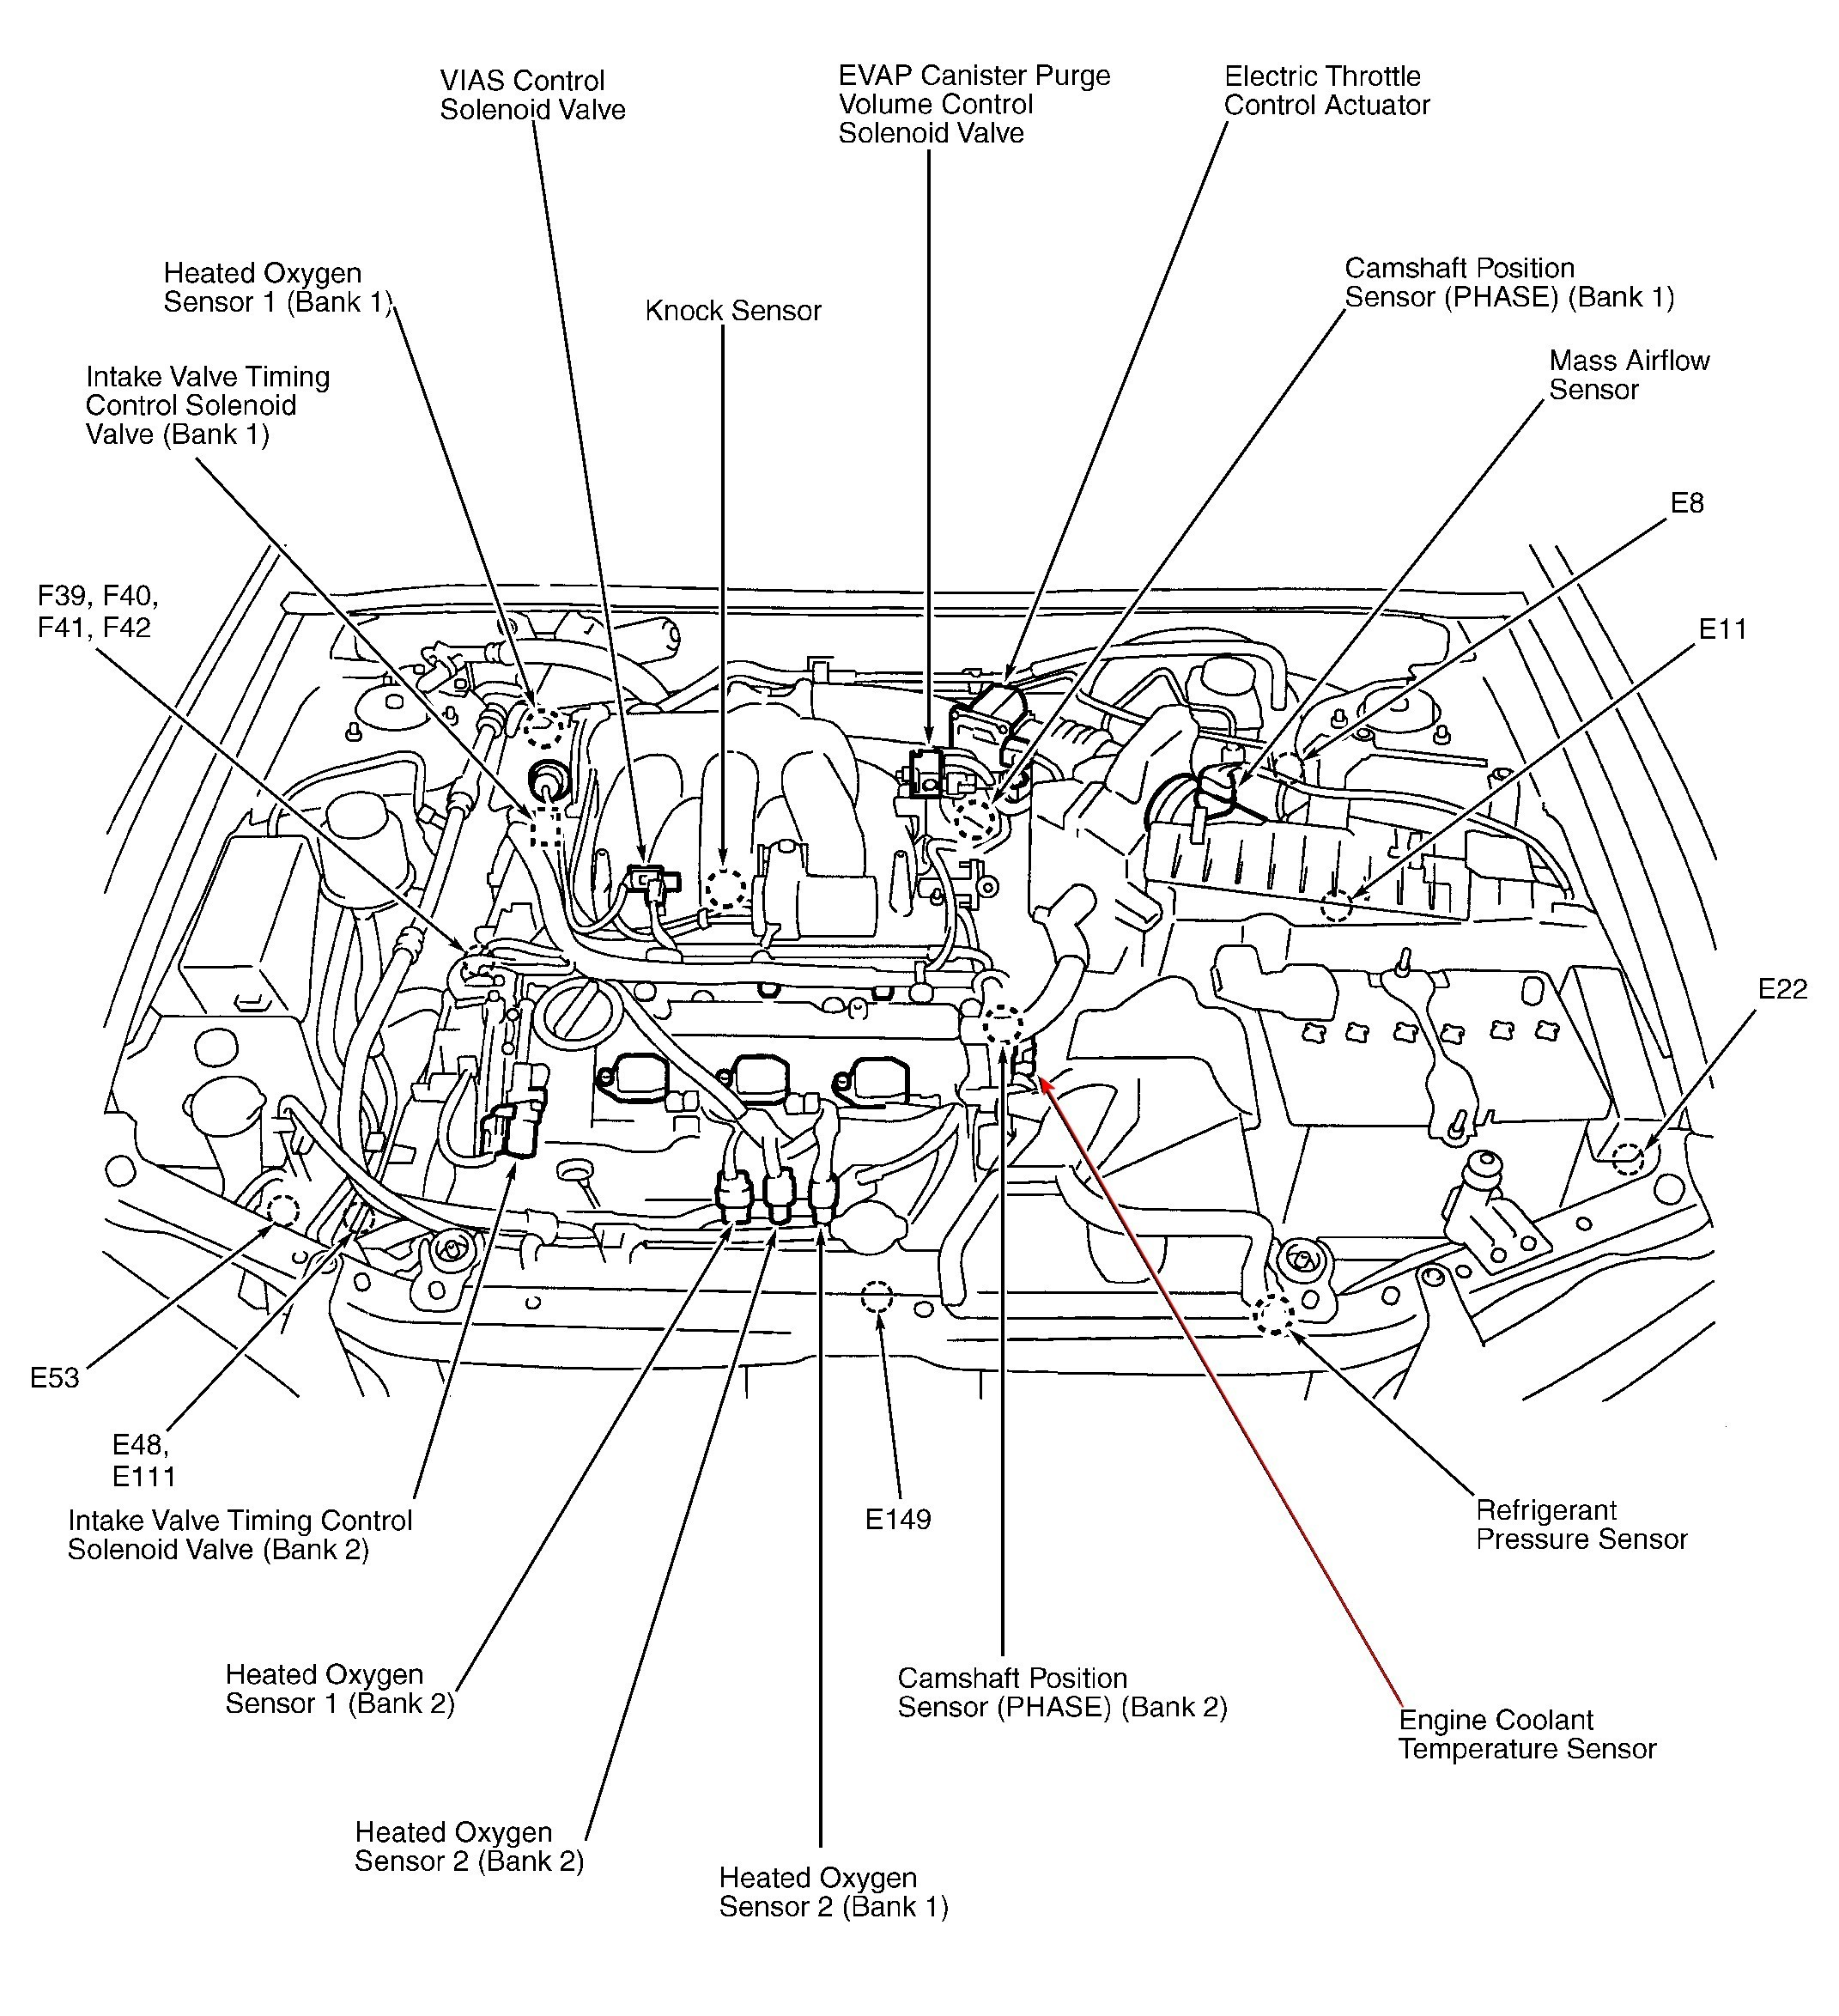 Engine Parts Diagram with Dimensions Car Parts Labeled Diagram Engine Parts Diagram Names ] Saab Plug Of Engine Parts Diagram with Dimensions